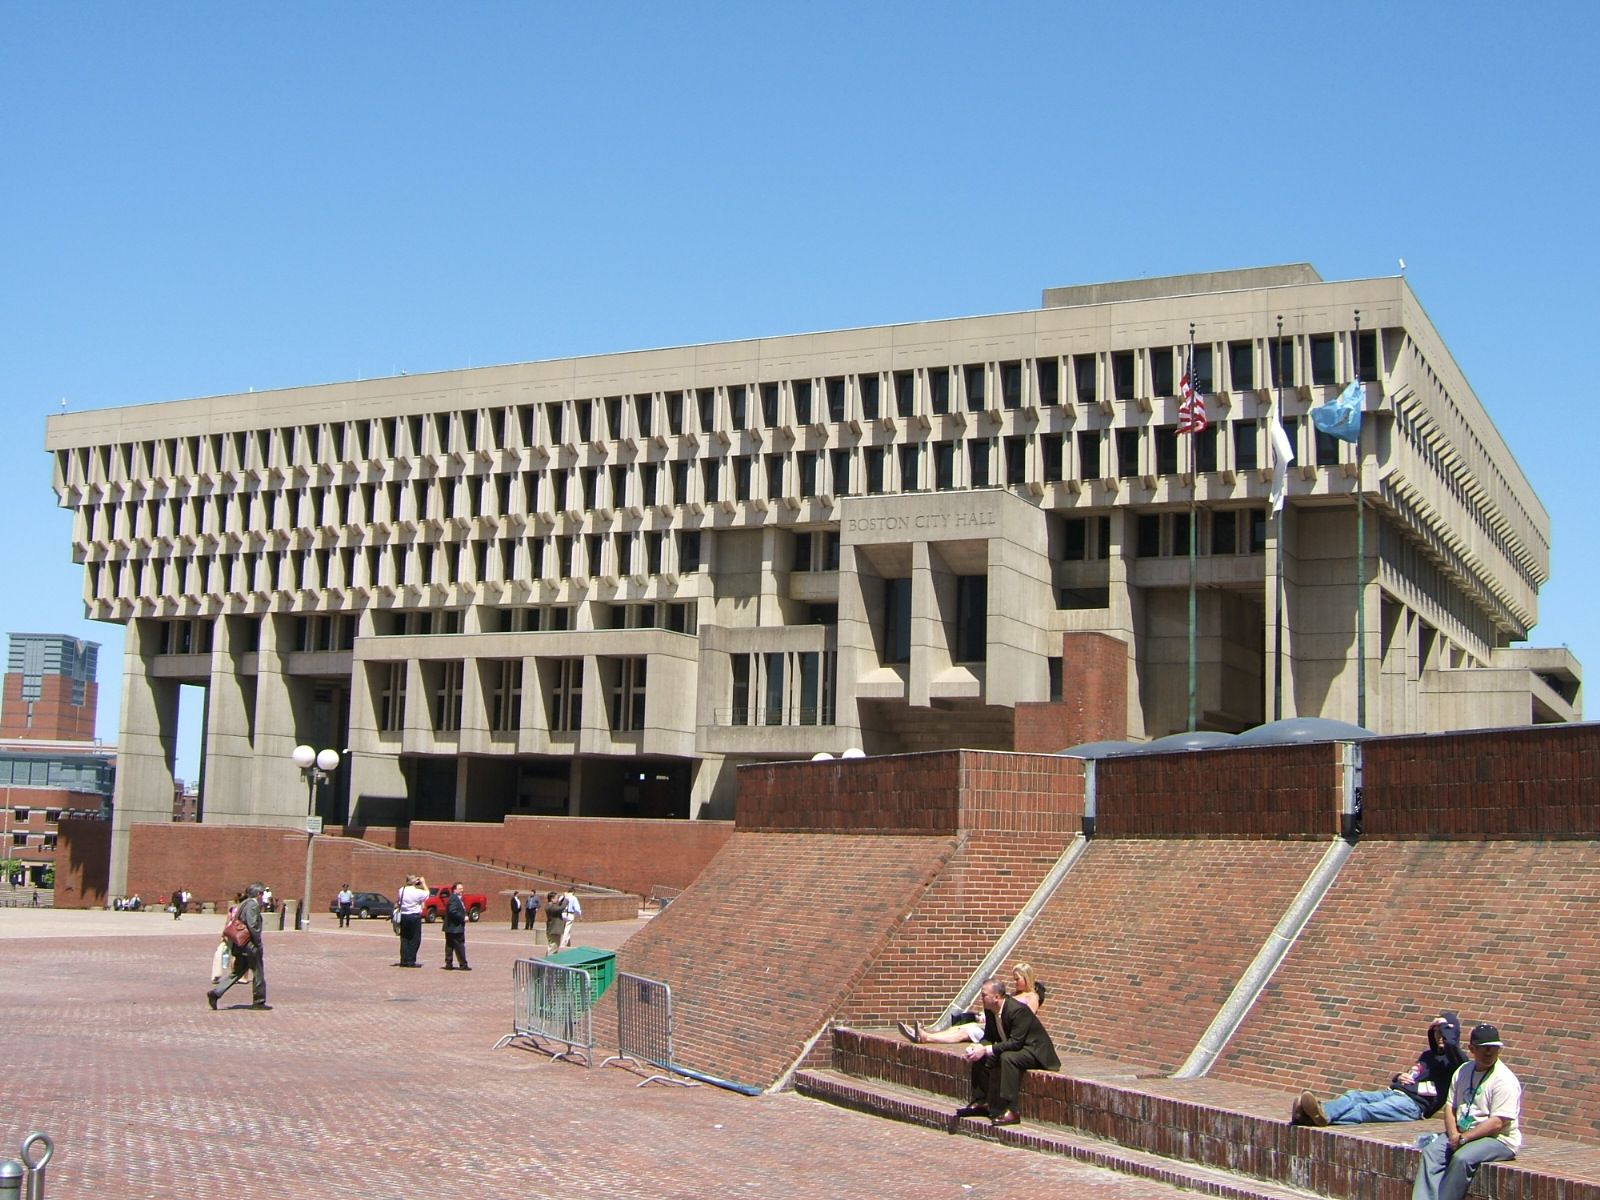 Architecture Boston City Hall By Kallmann Mckinnell & Knowles